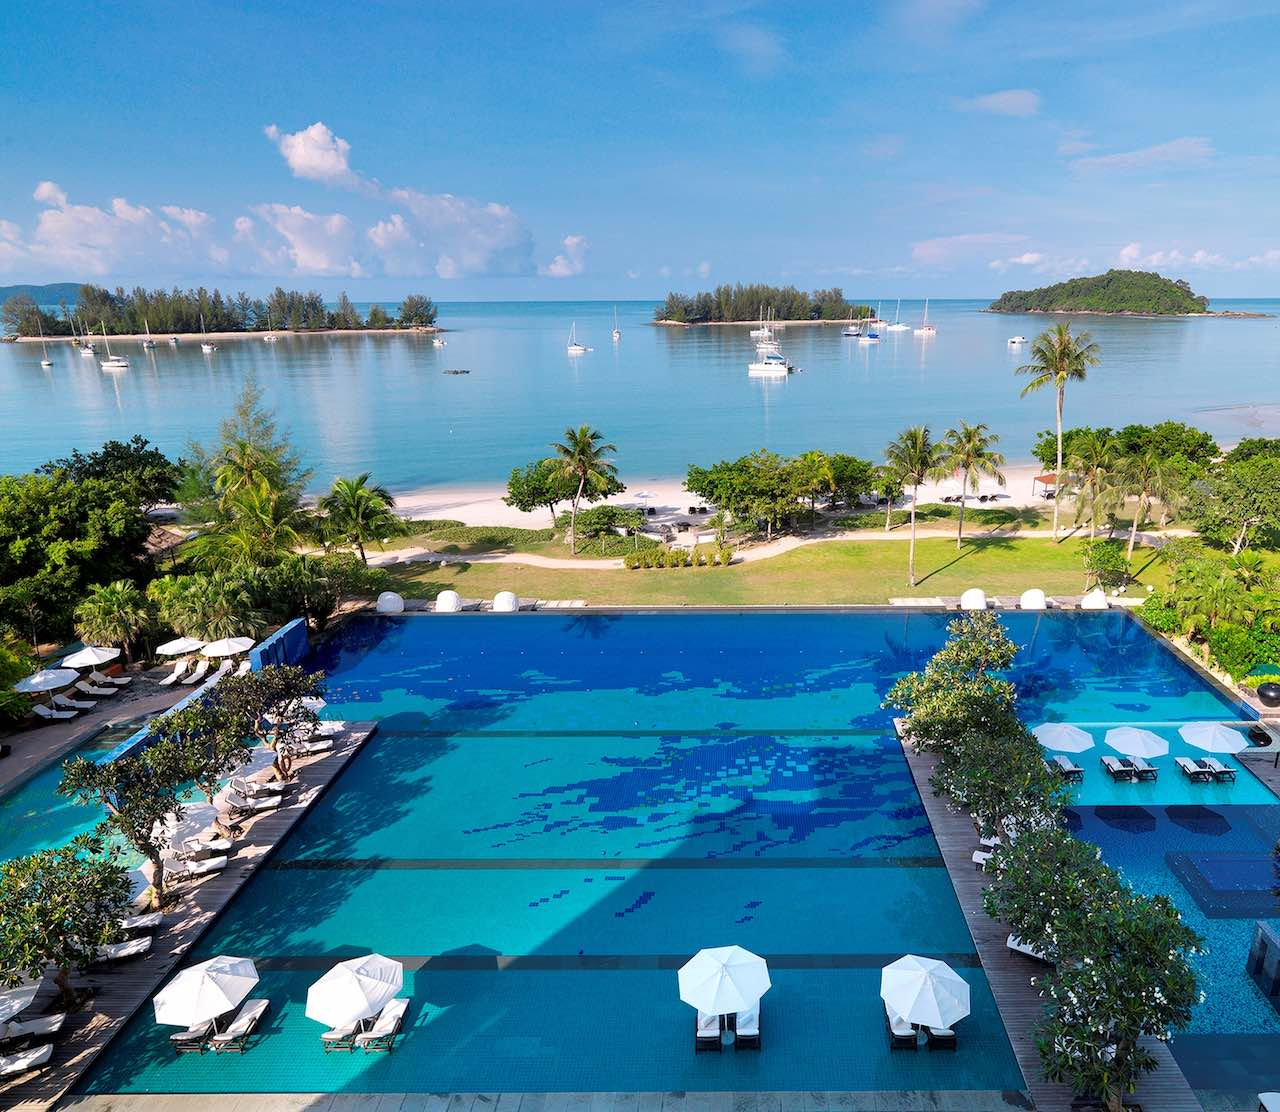 The Danna Langkawi, Malaysia - The Danna Langkawi houses the largest infinity pool on the island